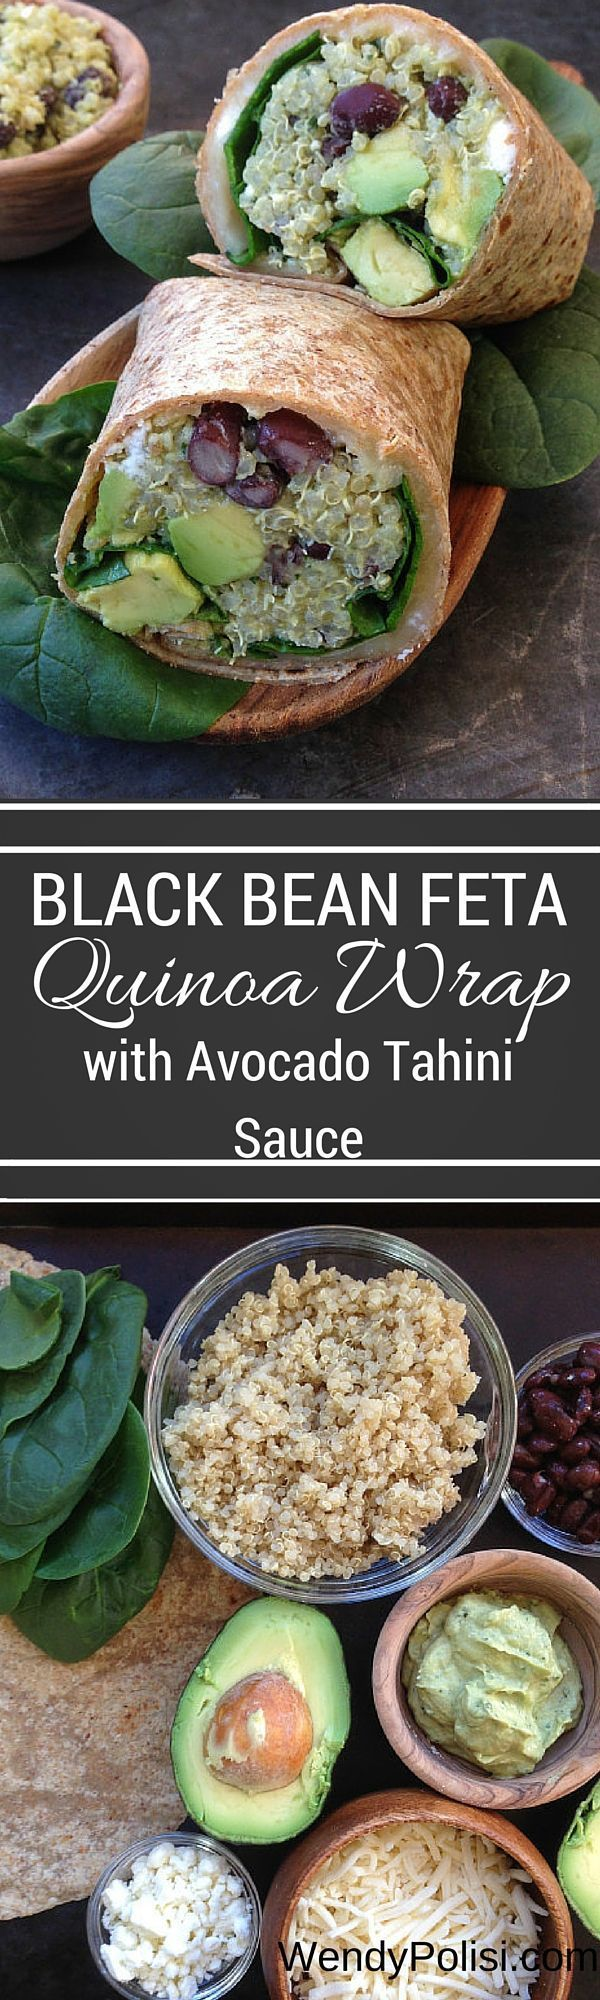 Black Bean Feta Quinoa Wrap with Avocado Tahini Sauce #healthy #lunch